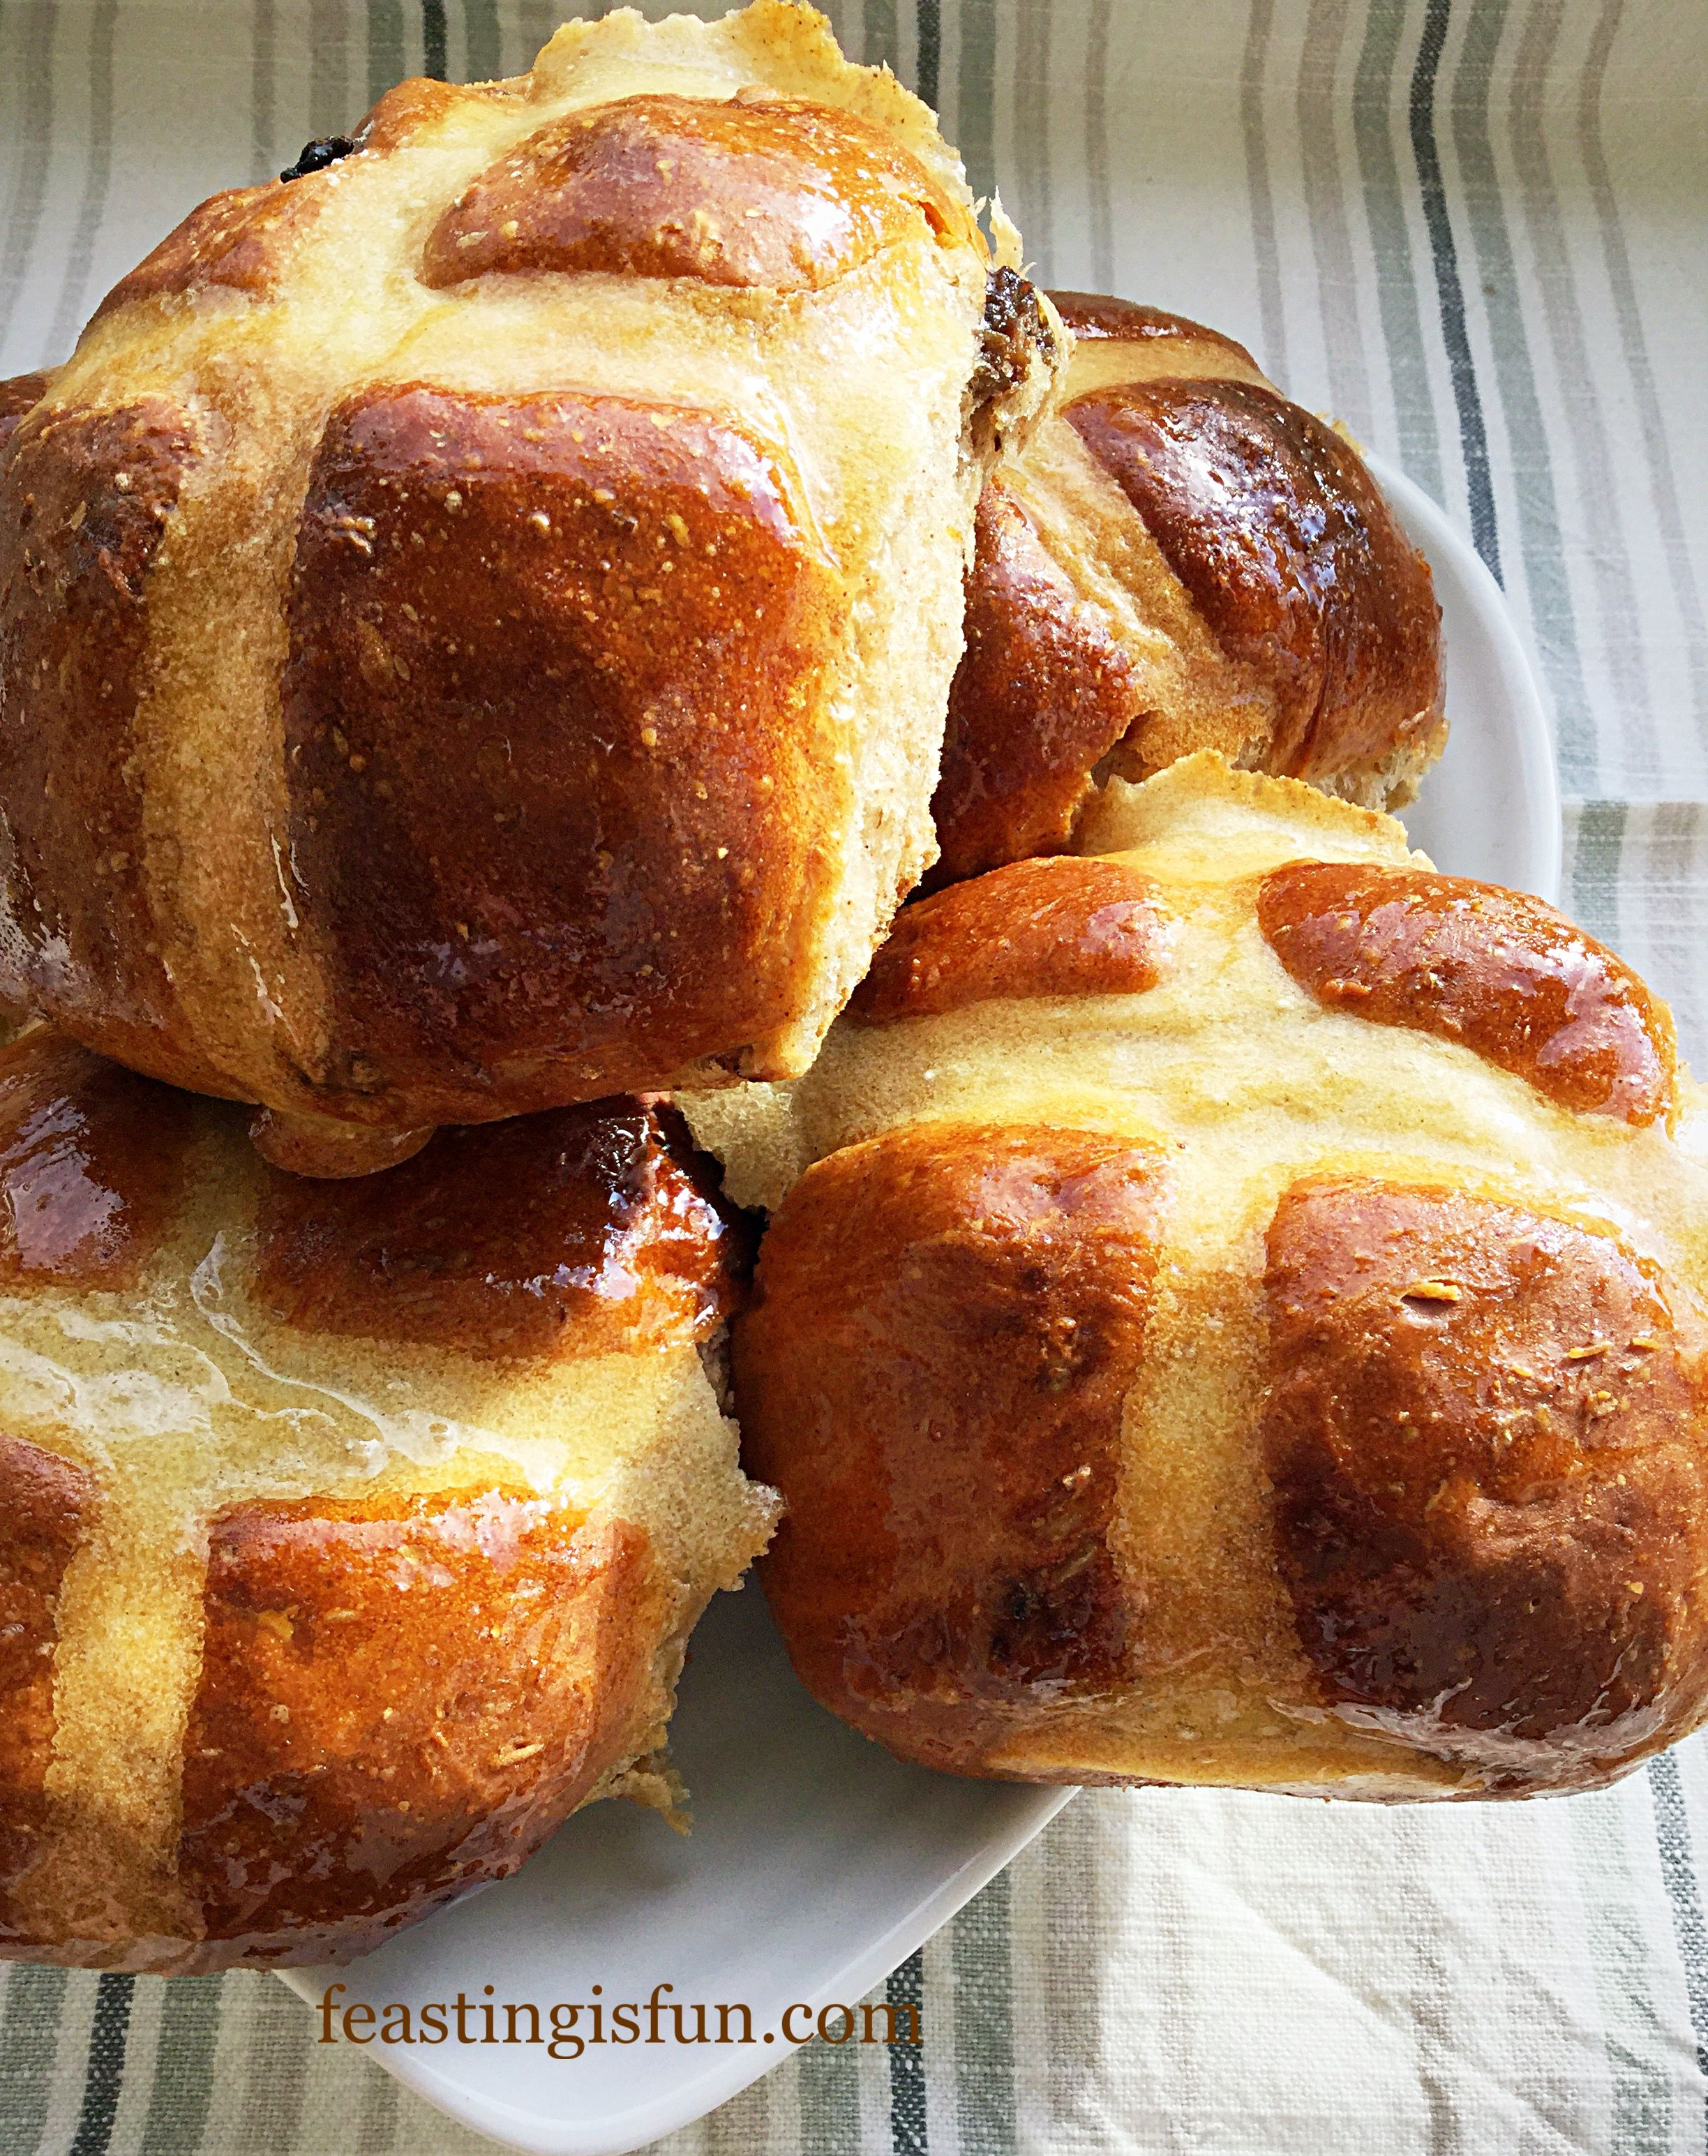 Extra Fruity Hot Cross Buns pack in even more plump vine fruits and spices. With a small addition of wholemeal flour these are a perfect breakfast or lunch.